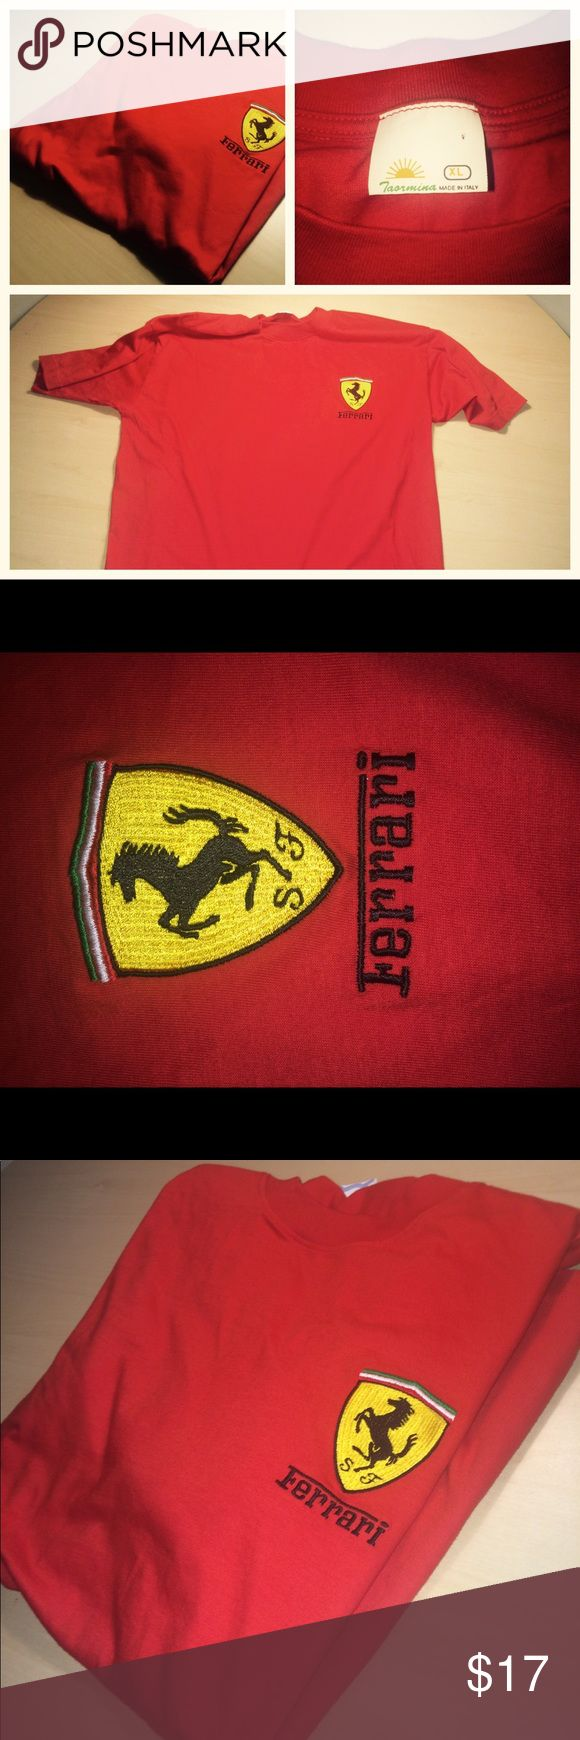 "Ferrari Men's XL Classic Red Crewneck T-Shirt Red, Like new. Classic and elegant XL tee shirt with Ferrari shield on left chest. Colors of Italian flag above shield; ""Ferrari"" in bold black letters below. Made in Italy; Taormina on tag. 100% Cotton. Perfect to wear to athletic games or out on a sunny day for a joyride. Ferrari Shirts Tees - Short Sleeve"